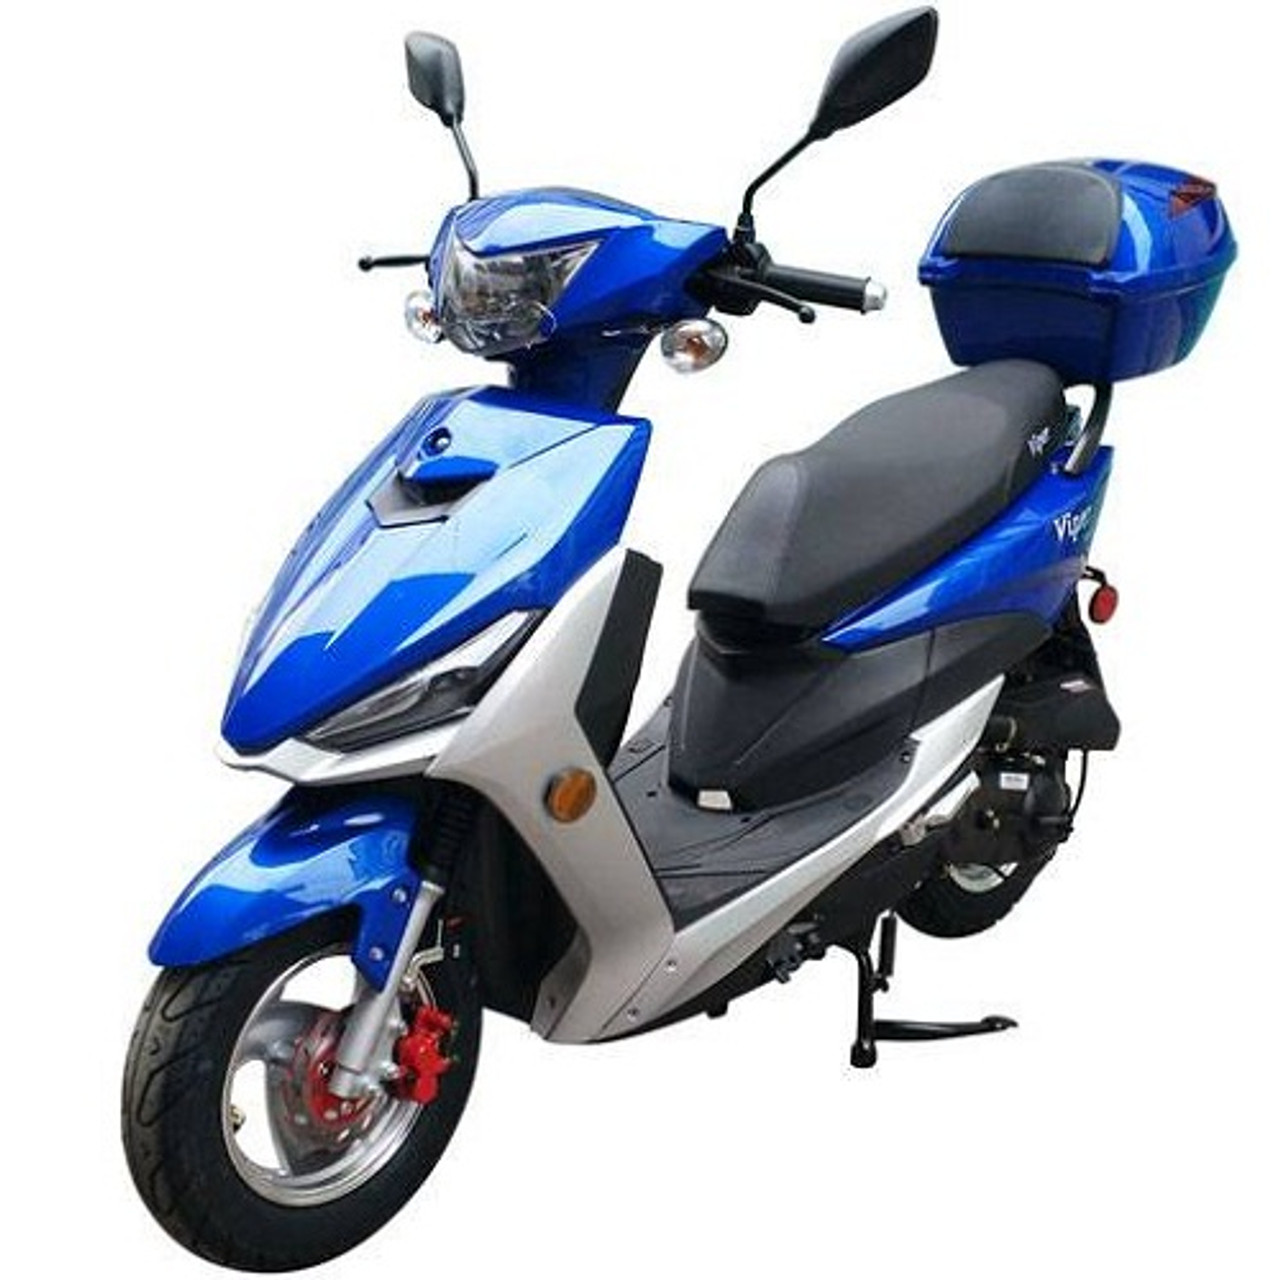 Vitacci Viper 49cc Scooter, 4 Stroke, Single Cylinder, Air-Forced Cool